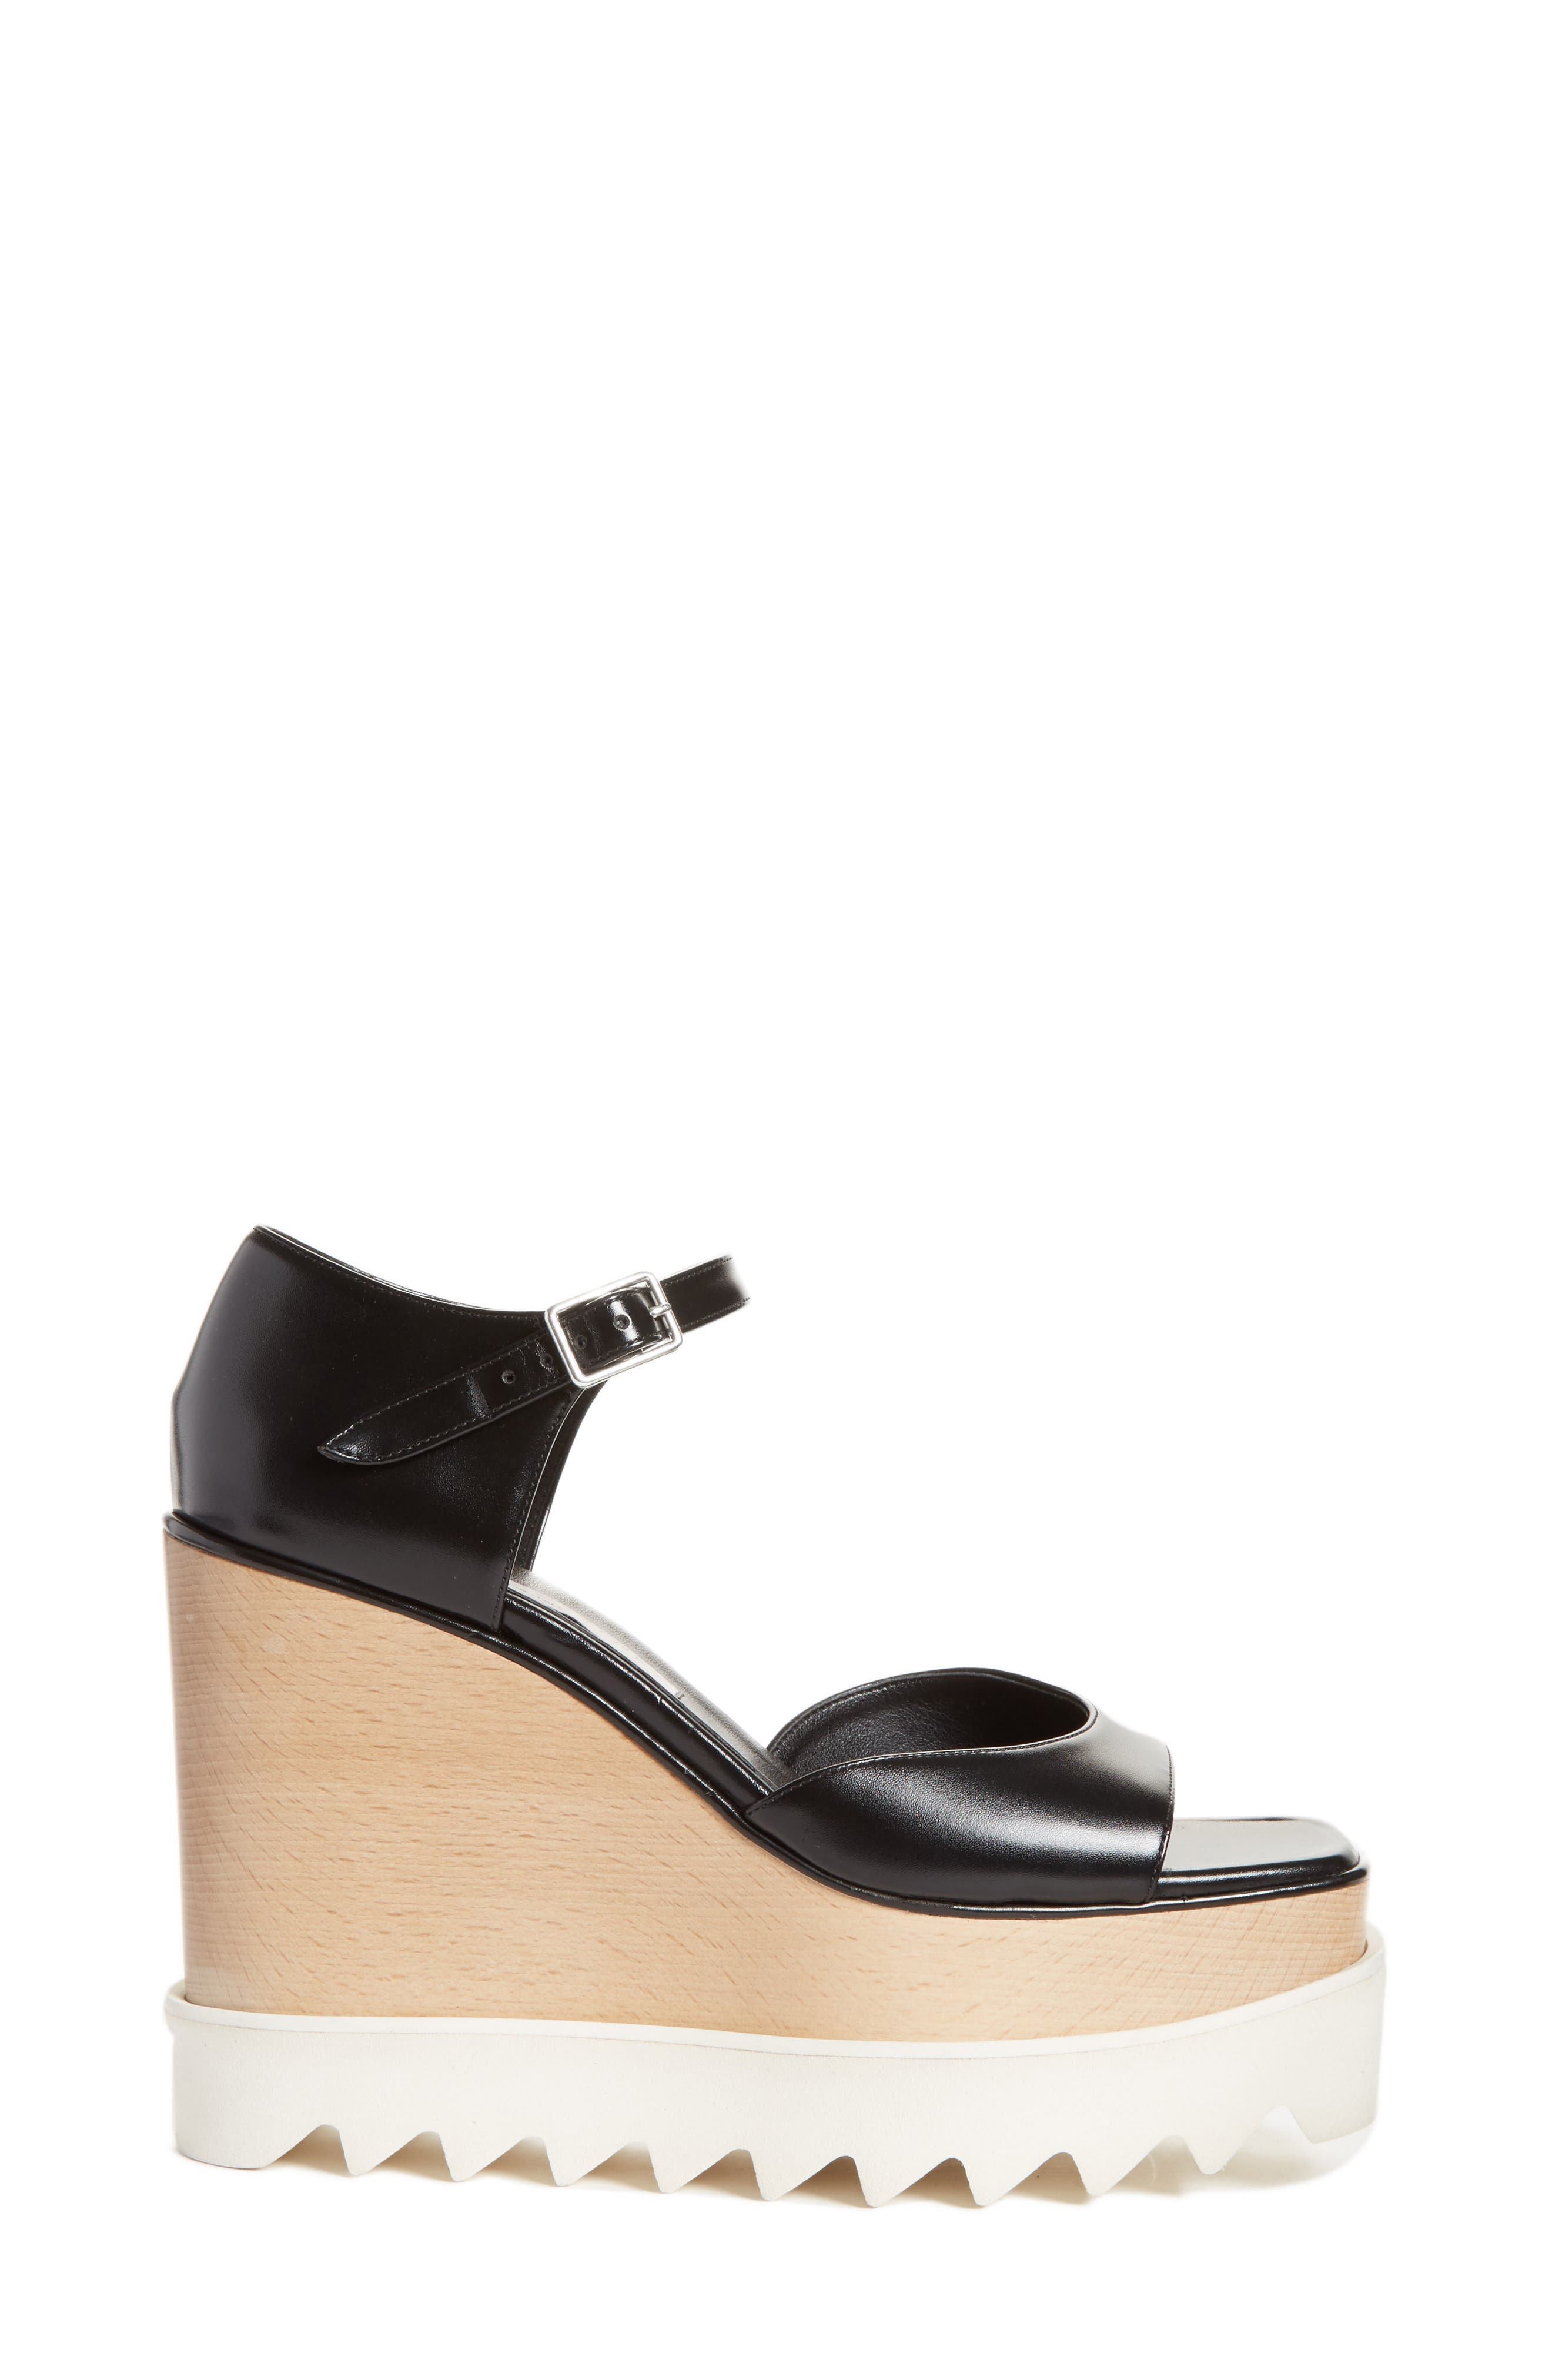 Alternate Image 3  - Stella McCartney Platform Wedge Sandal (Women)